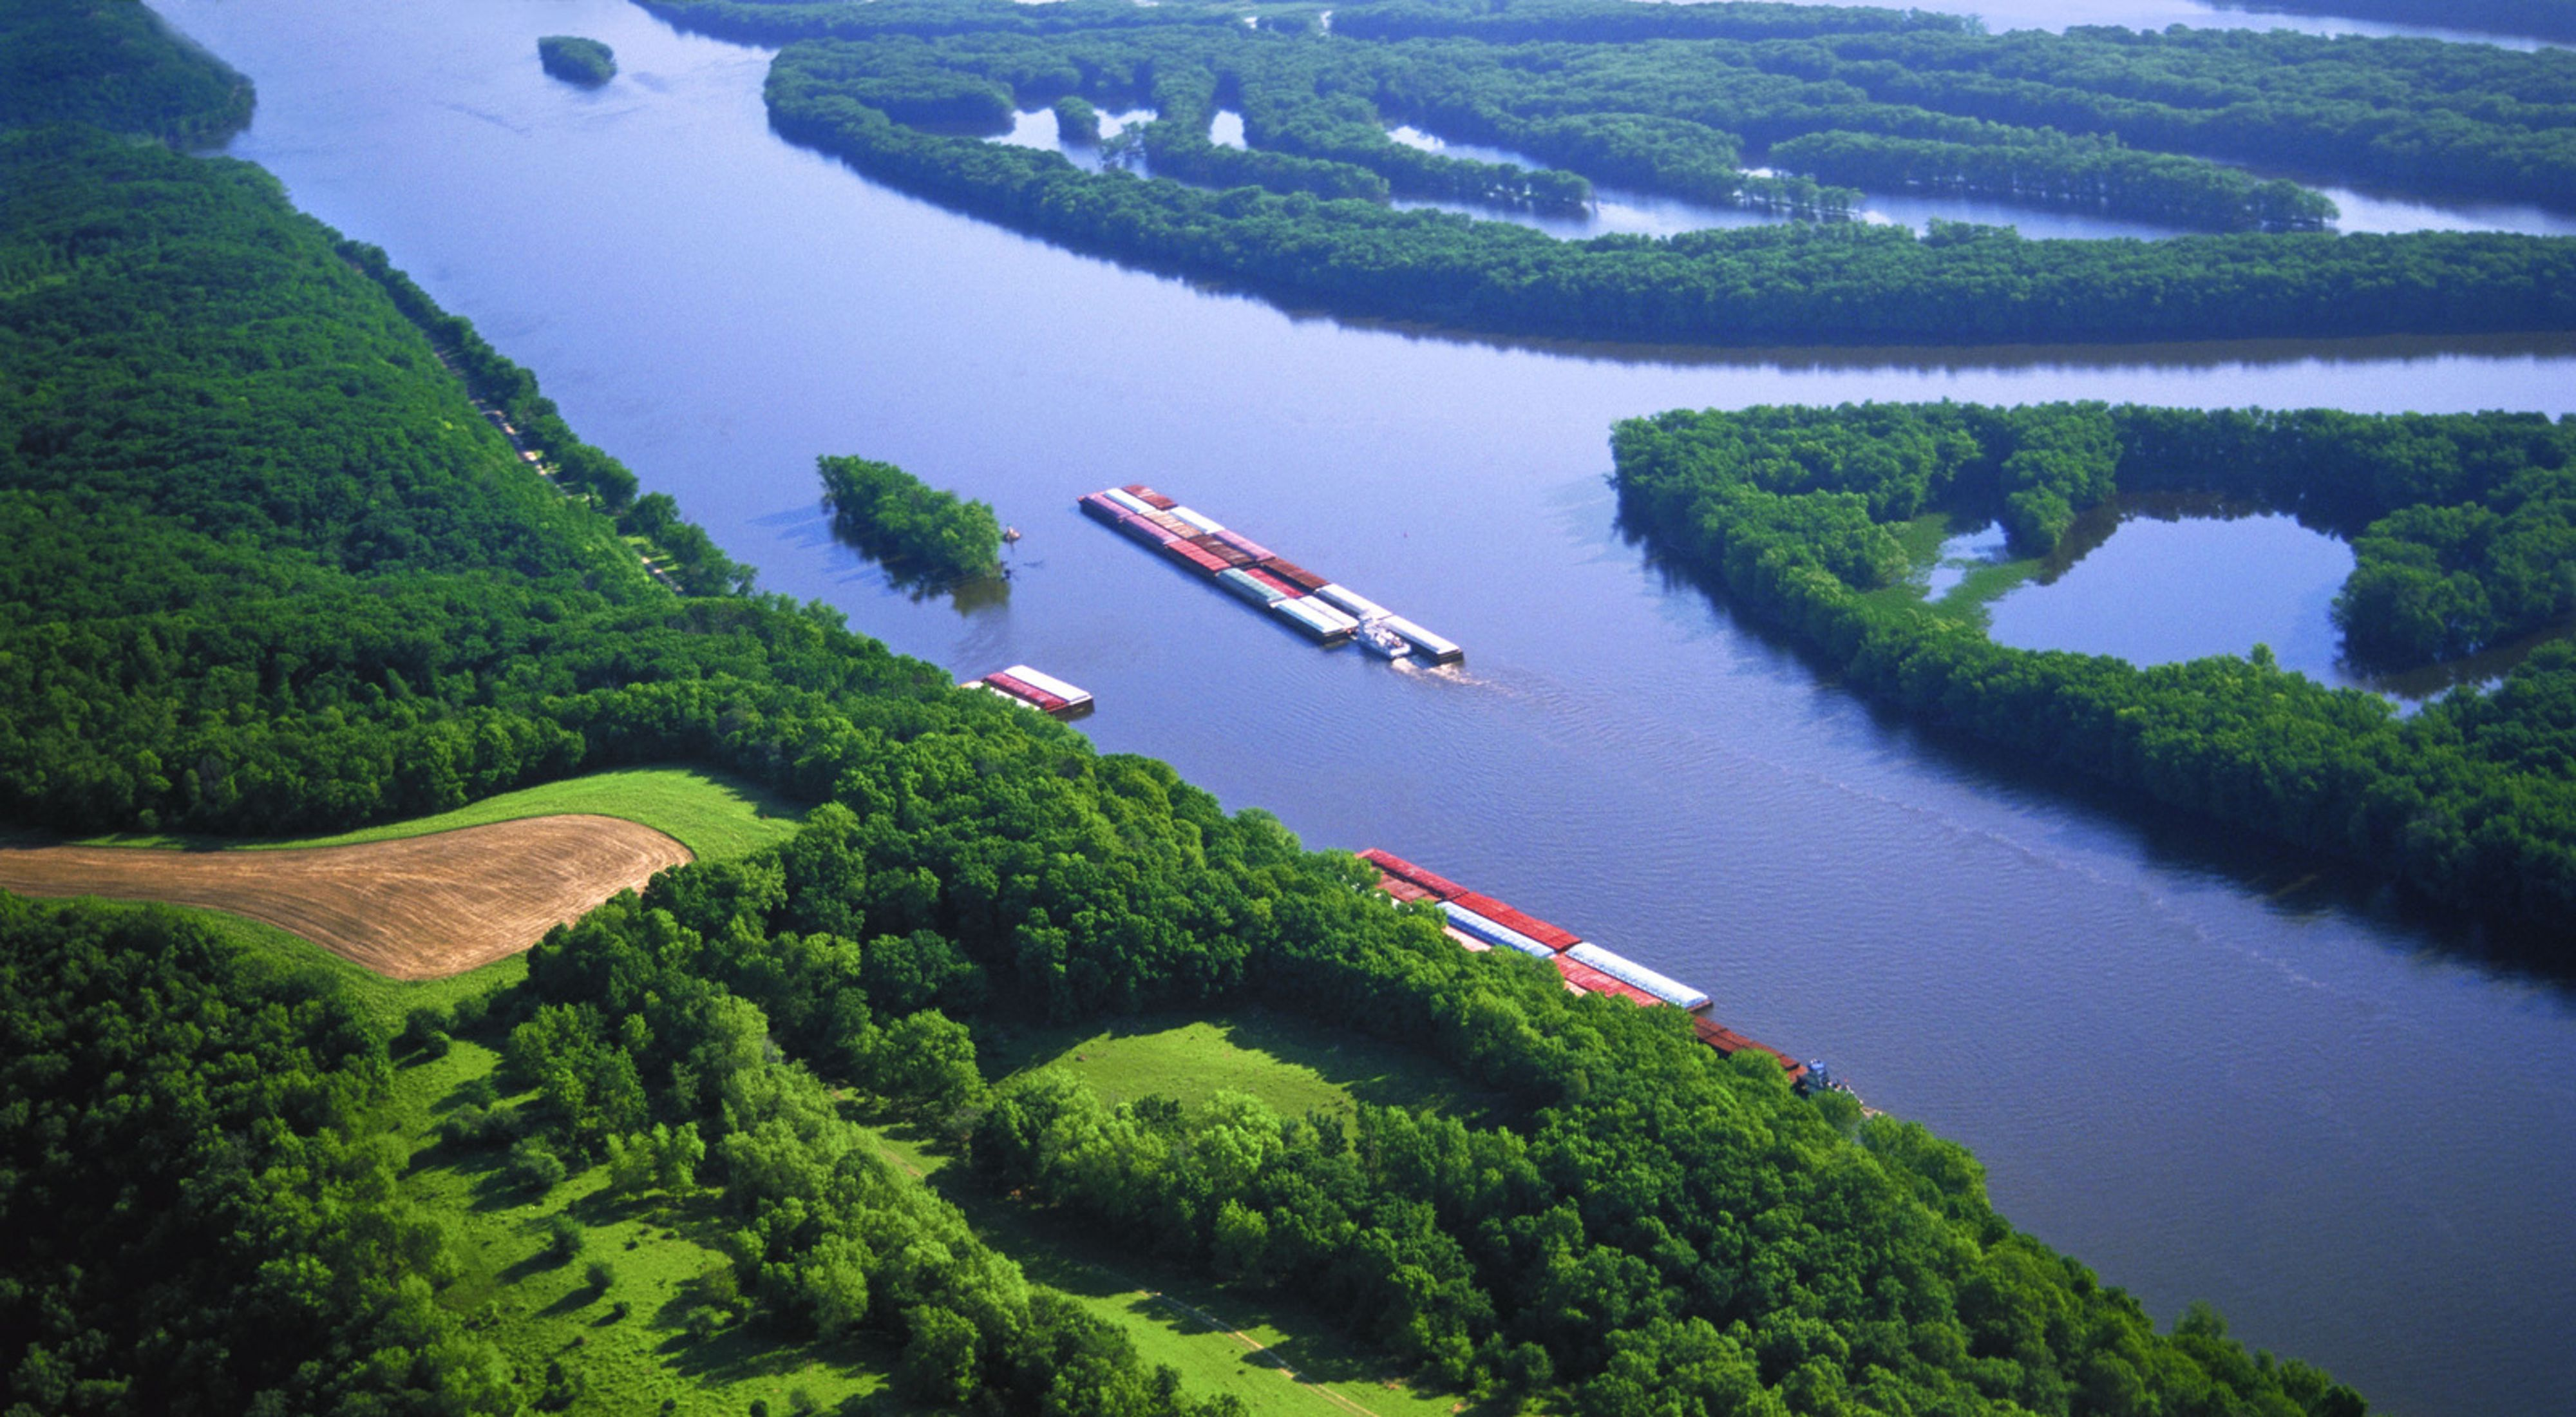 Aerial photo of the Mississippi River as barges navigate the water.